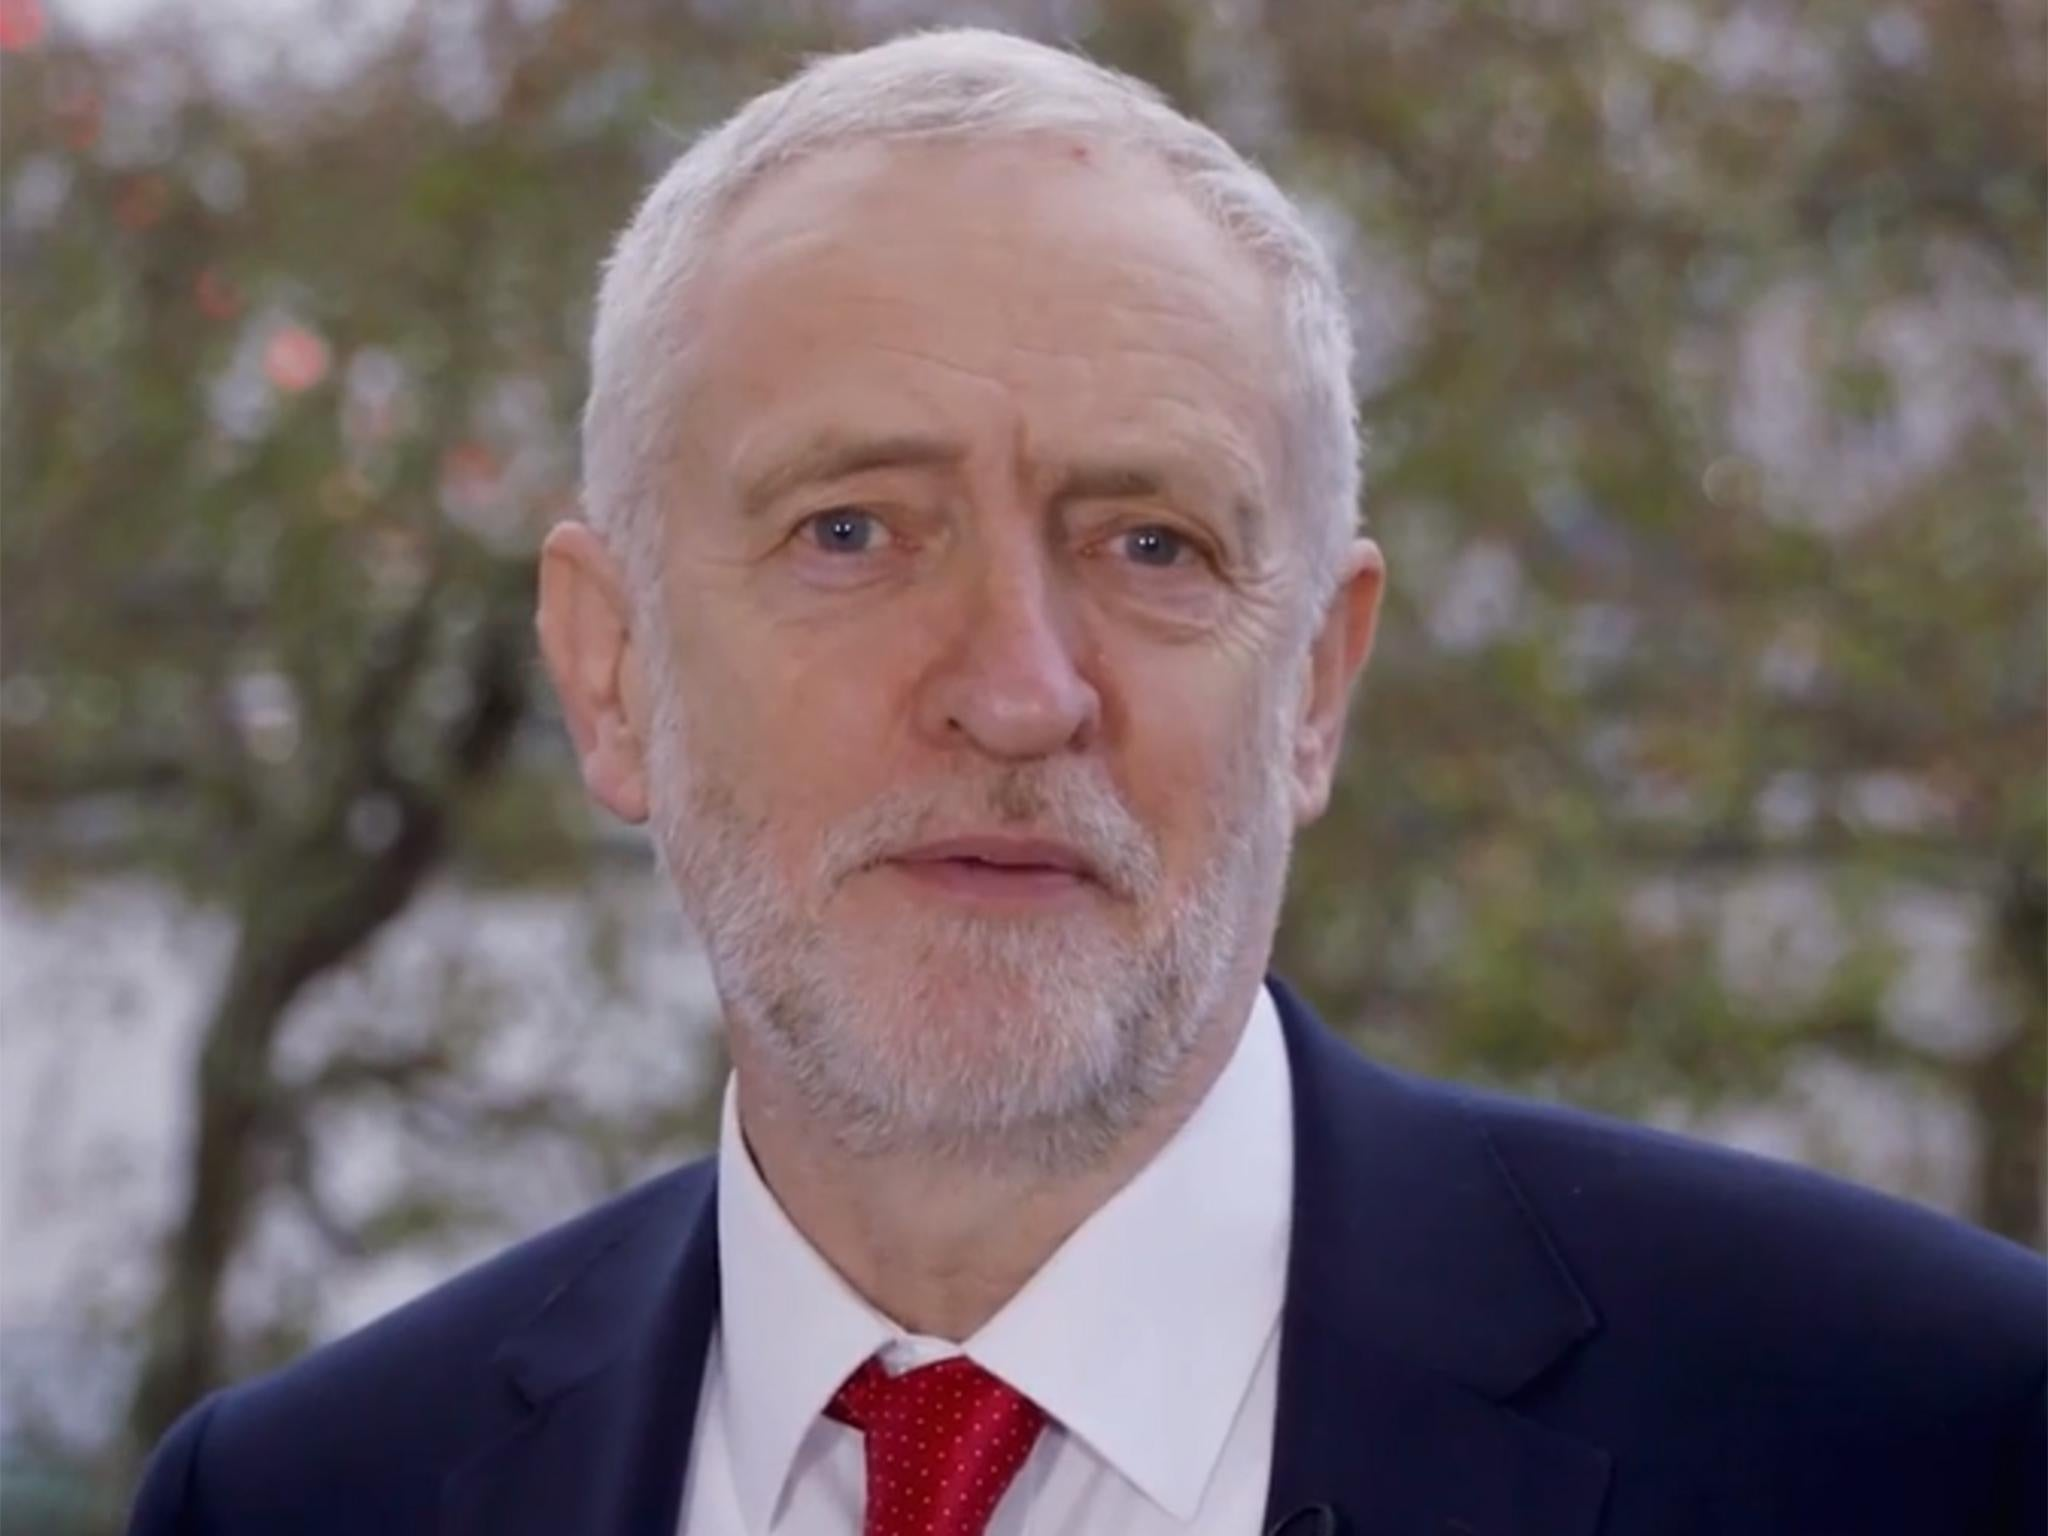 Jeremy Corbyn says Labour will occupy 'new centre ground' in New Years message